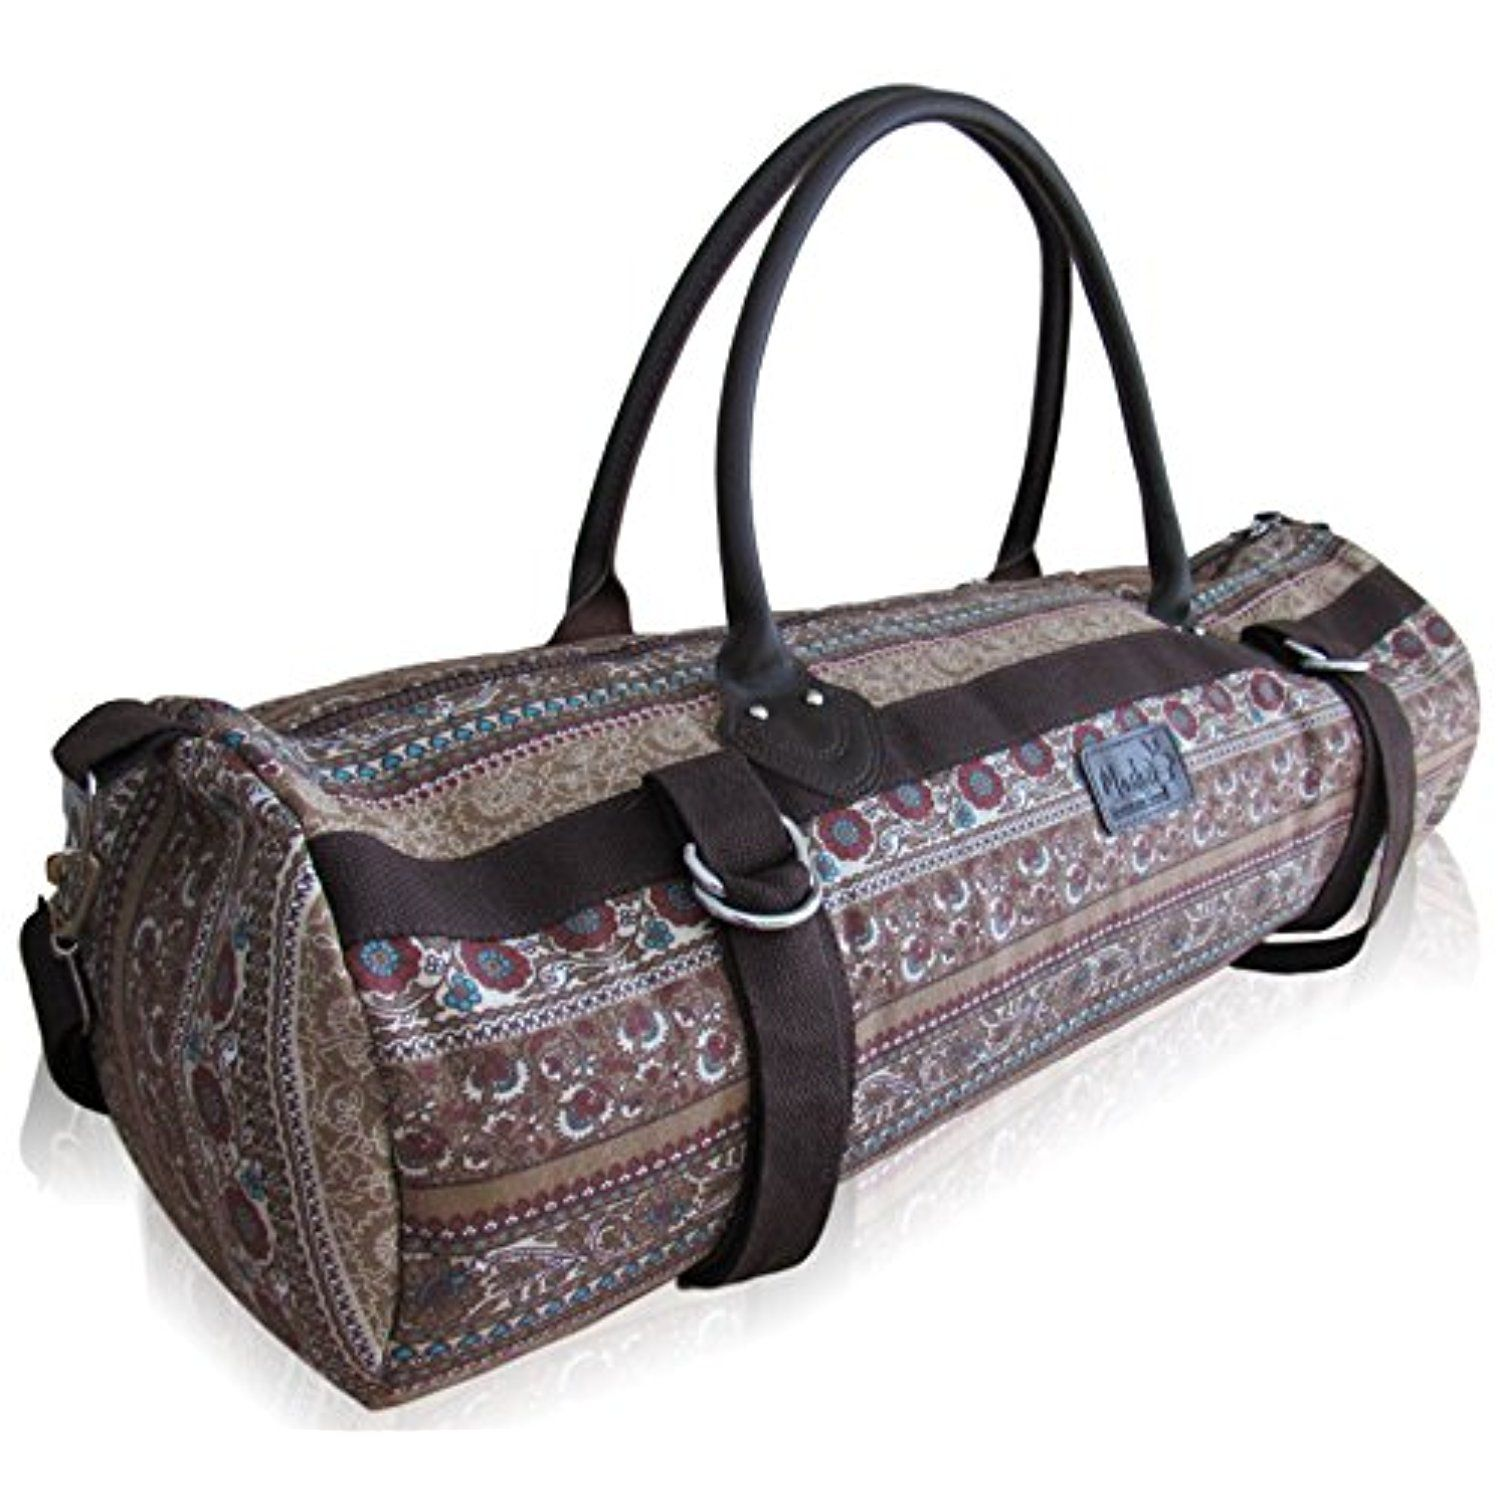 68ca9ba03a LEATHER handles and accents make this Yoga Mat Carrier Bag functional and  desirable